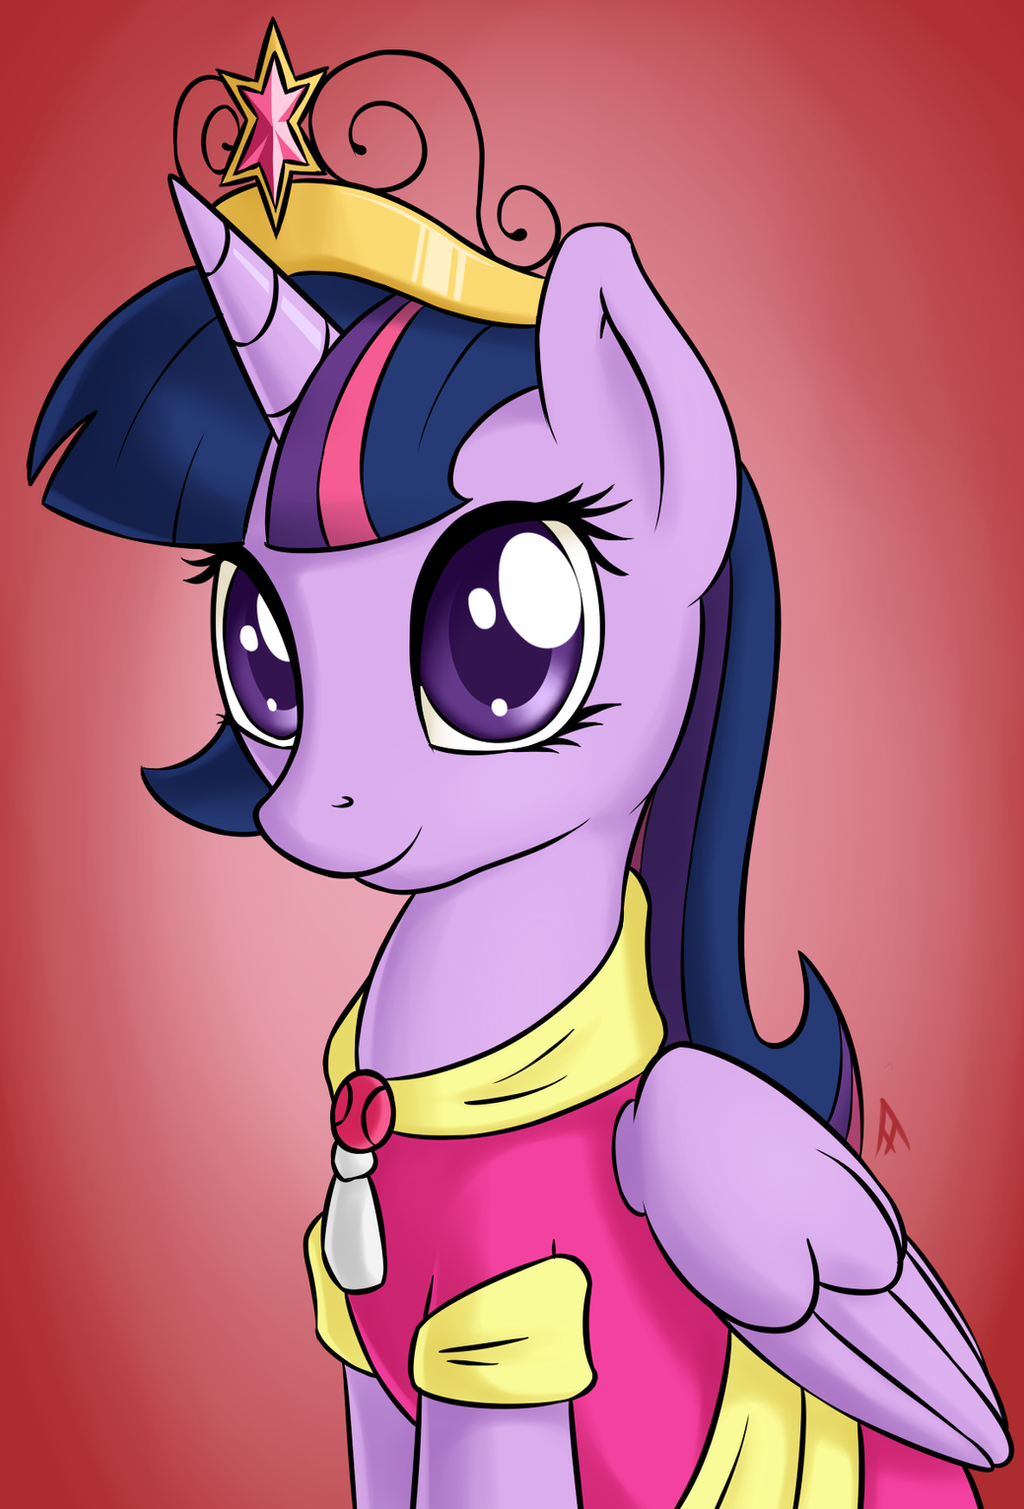 Princess by Magic by fearingFun